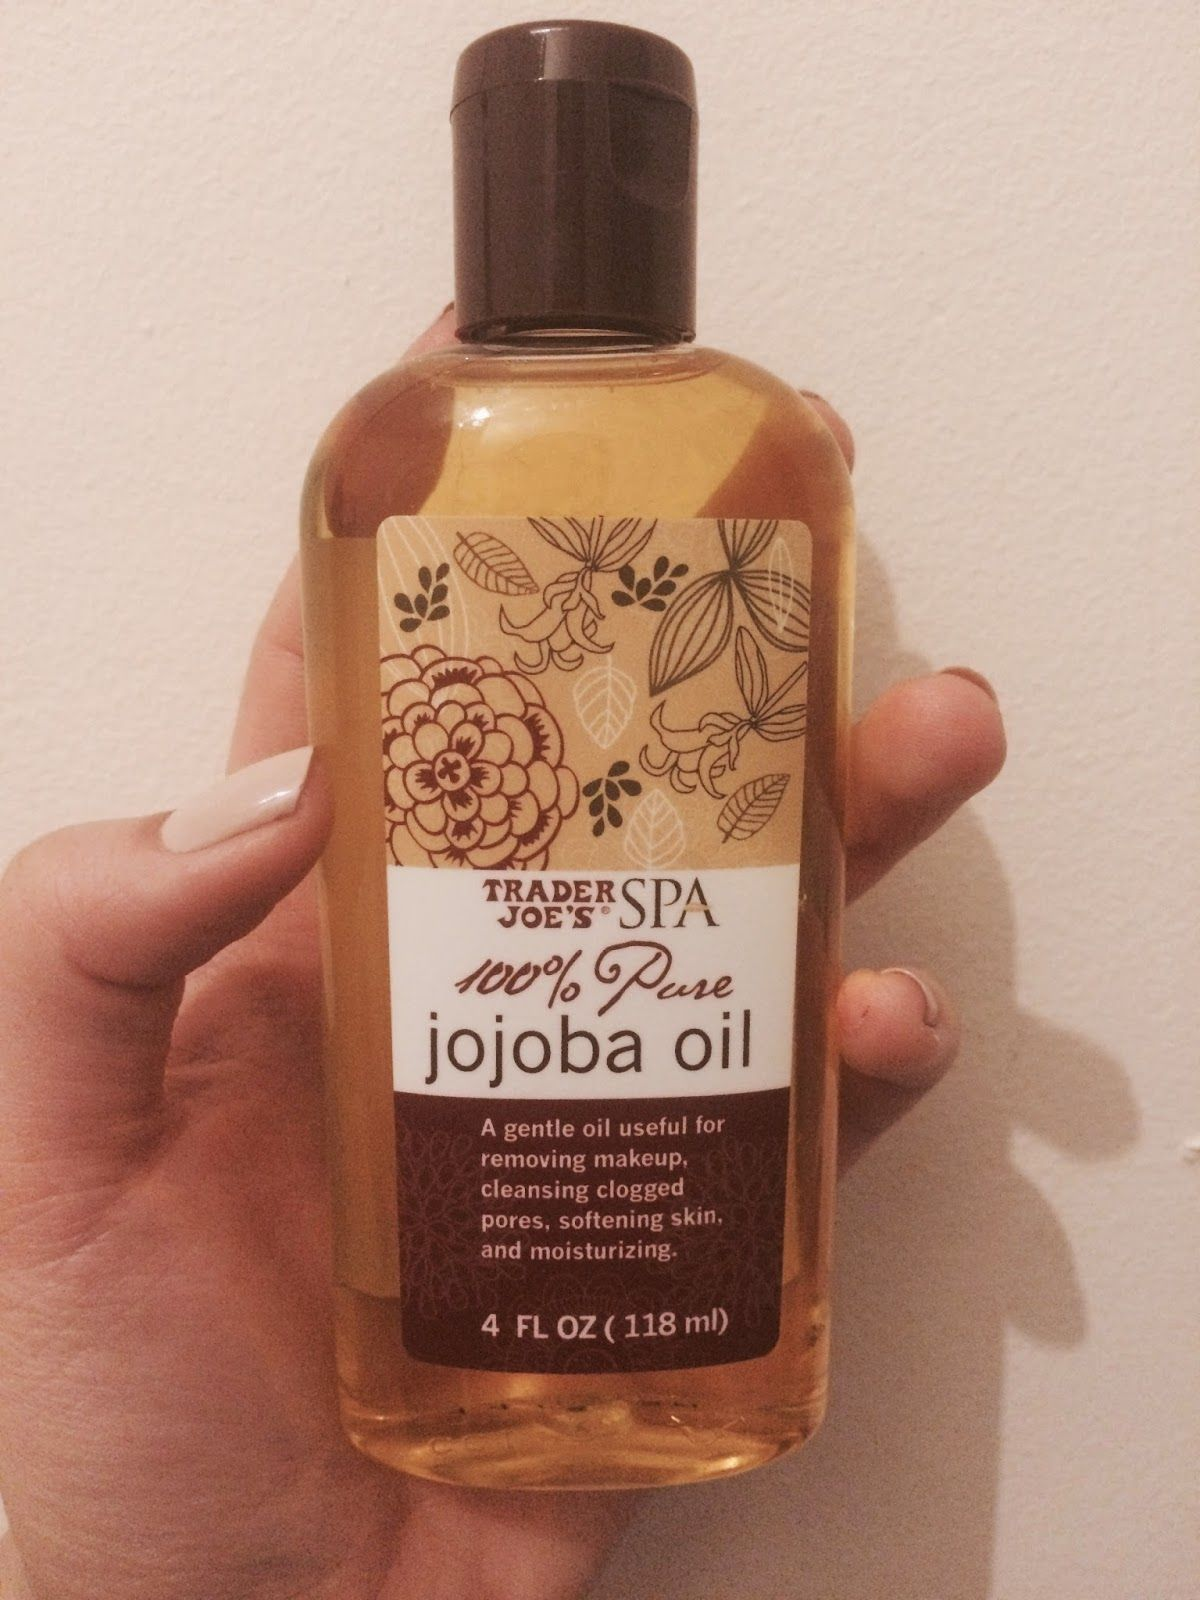 Tarn Rodgers Johns (With images) Soften skin, Jojoba